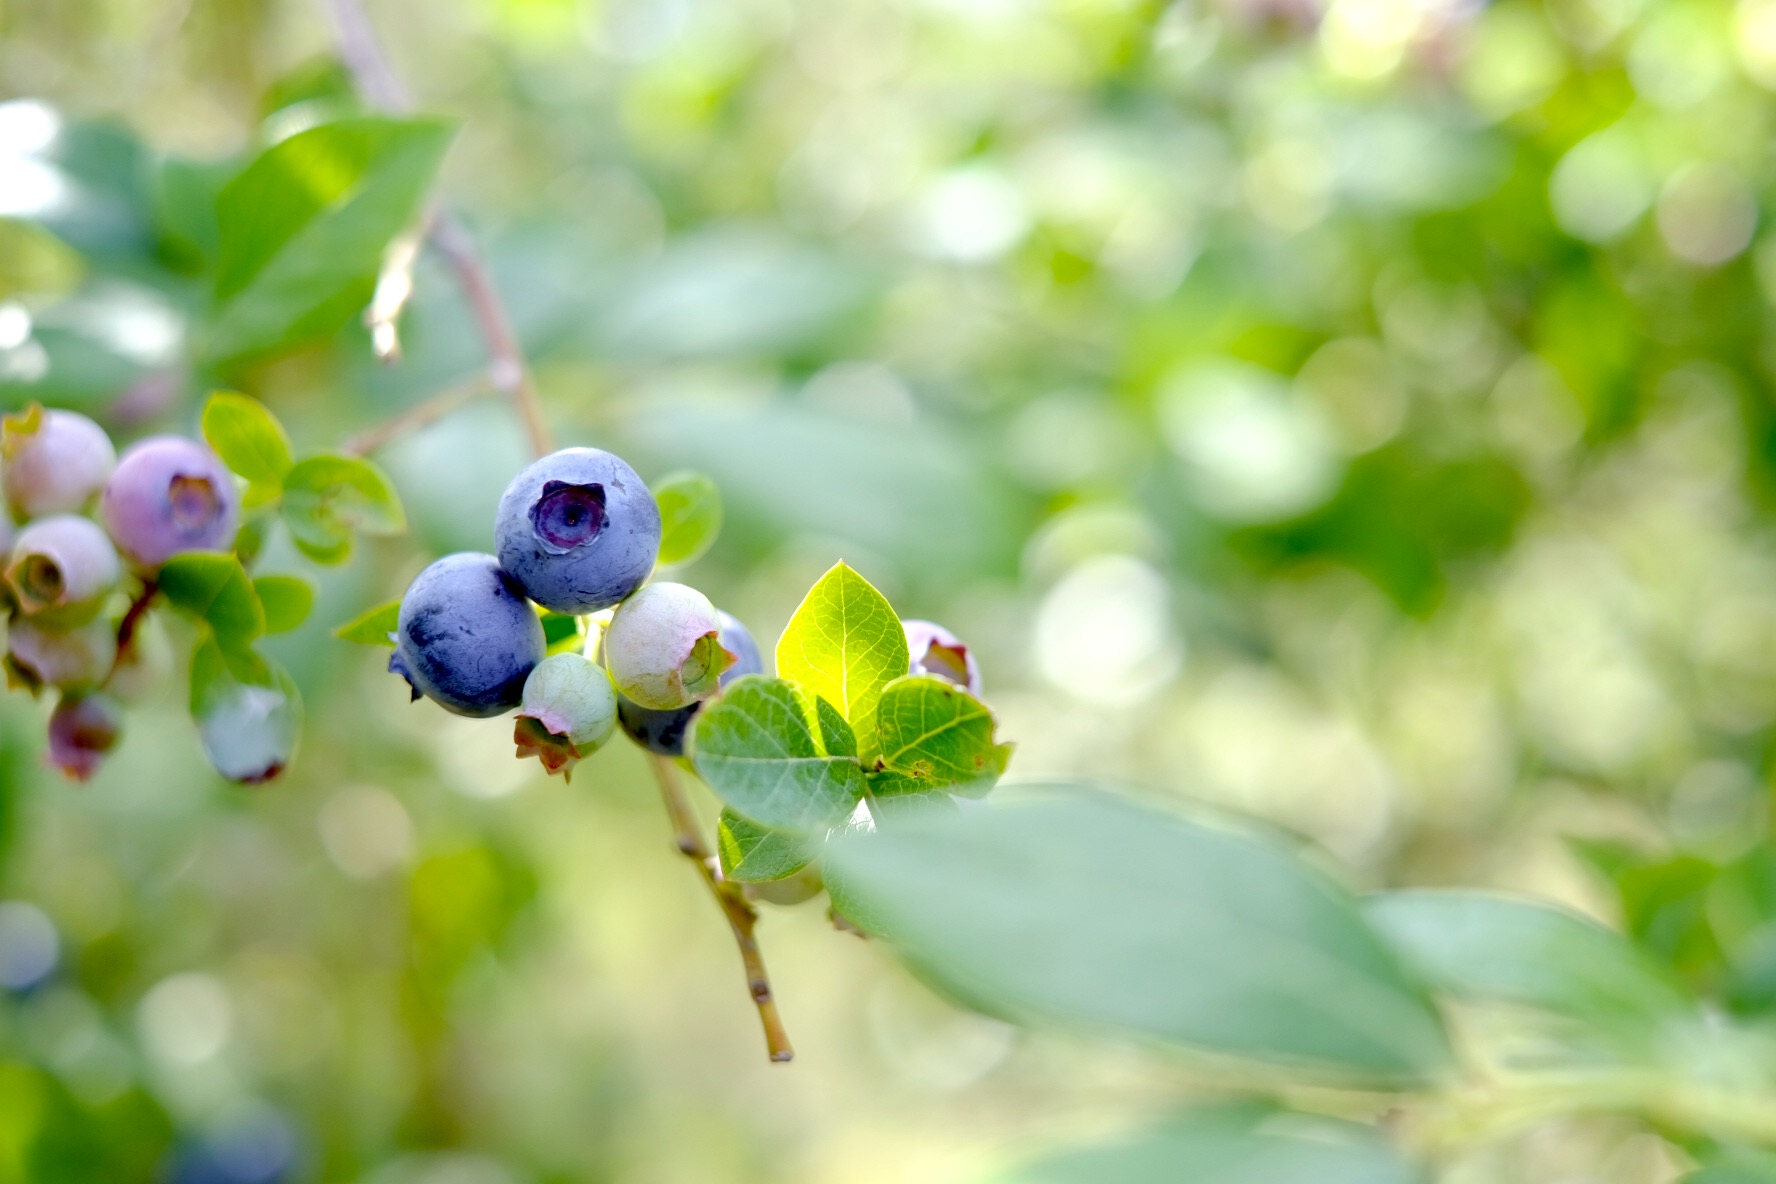 The blueberries were so yummy it was hard not to eat them as you picked.